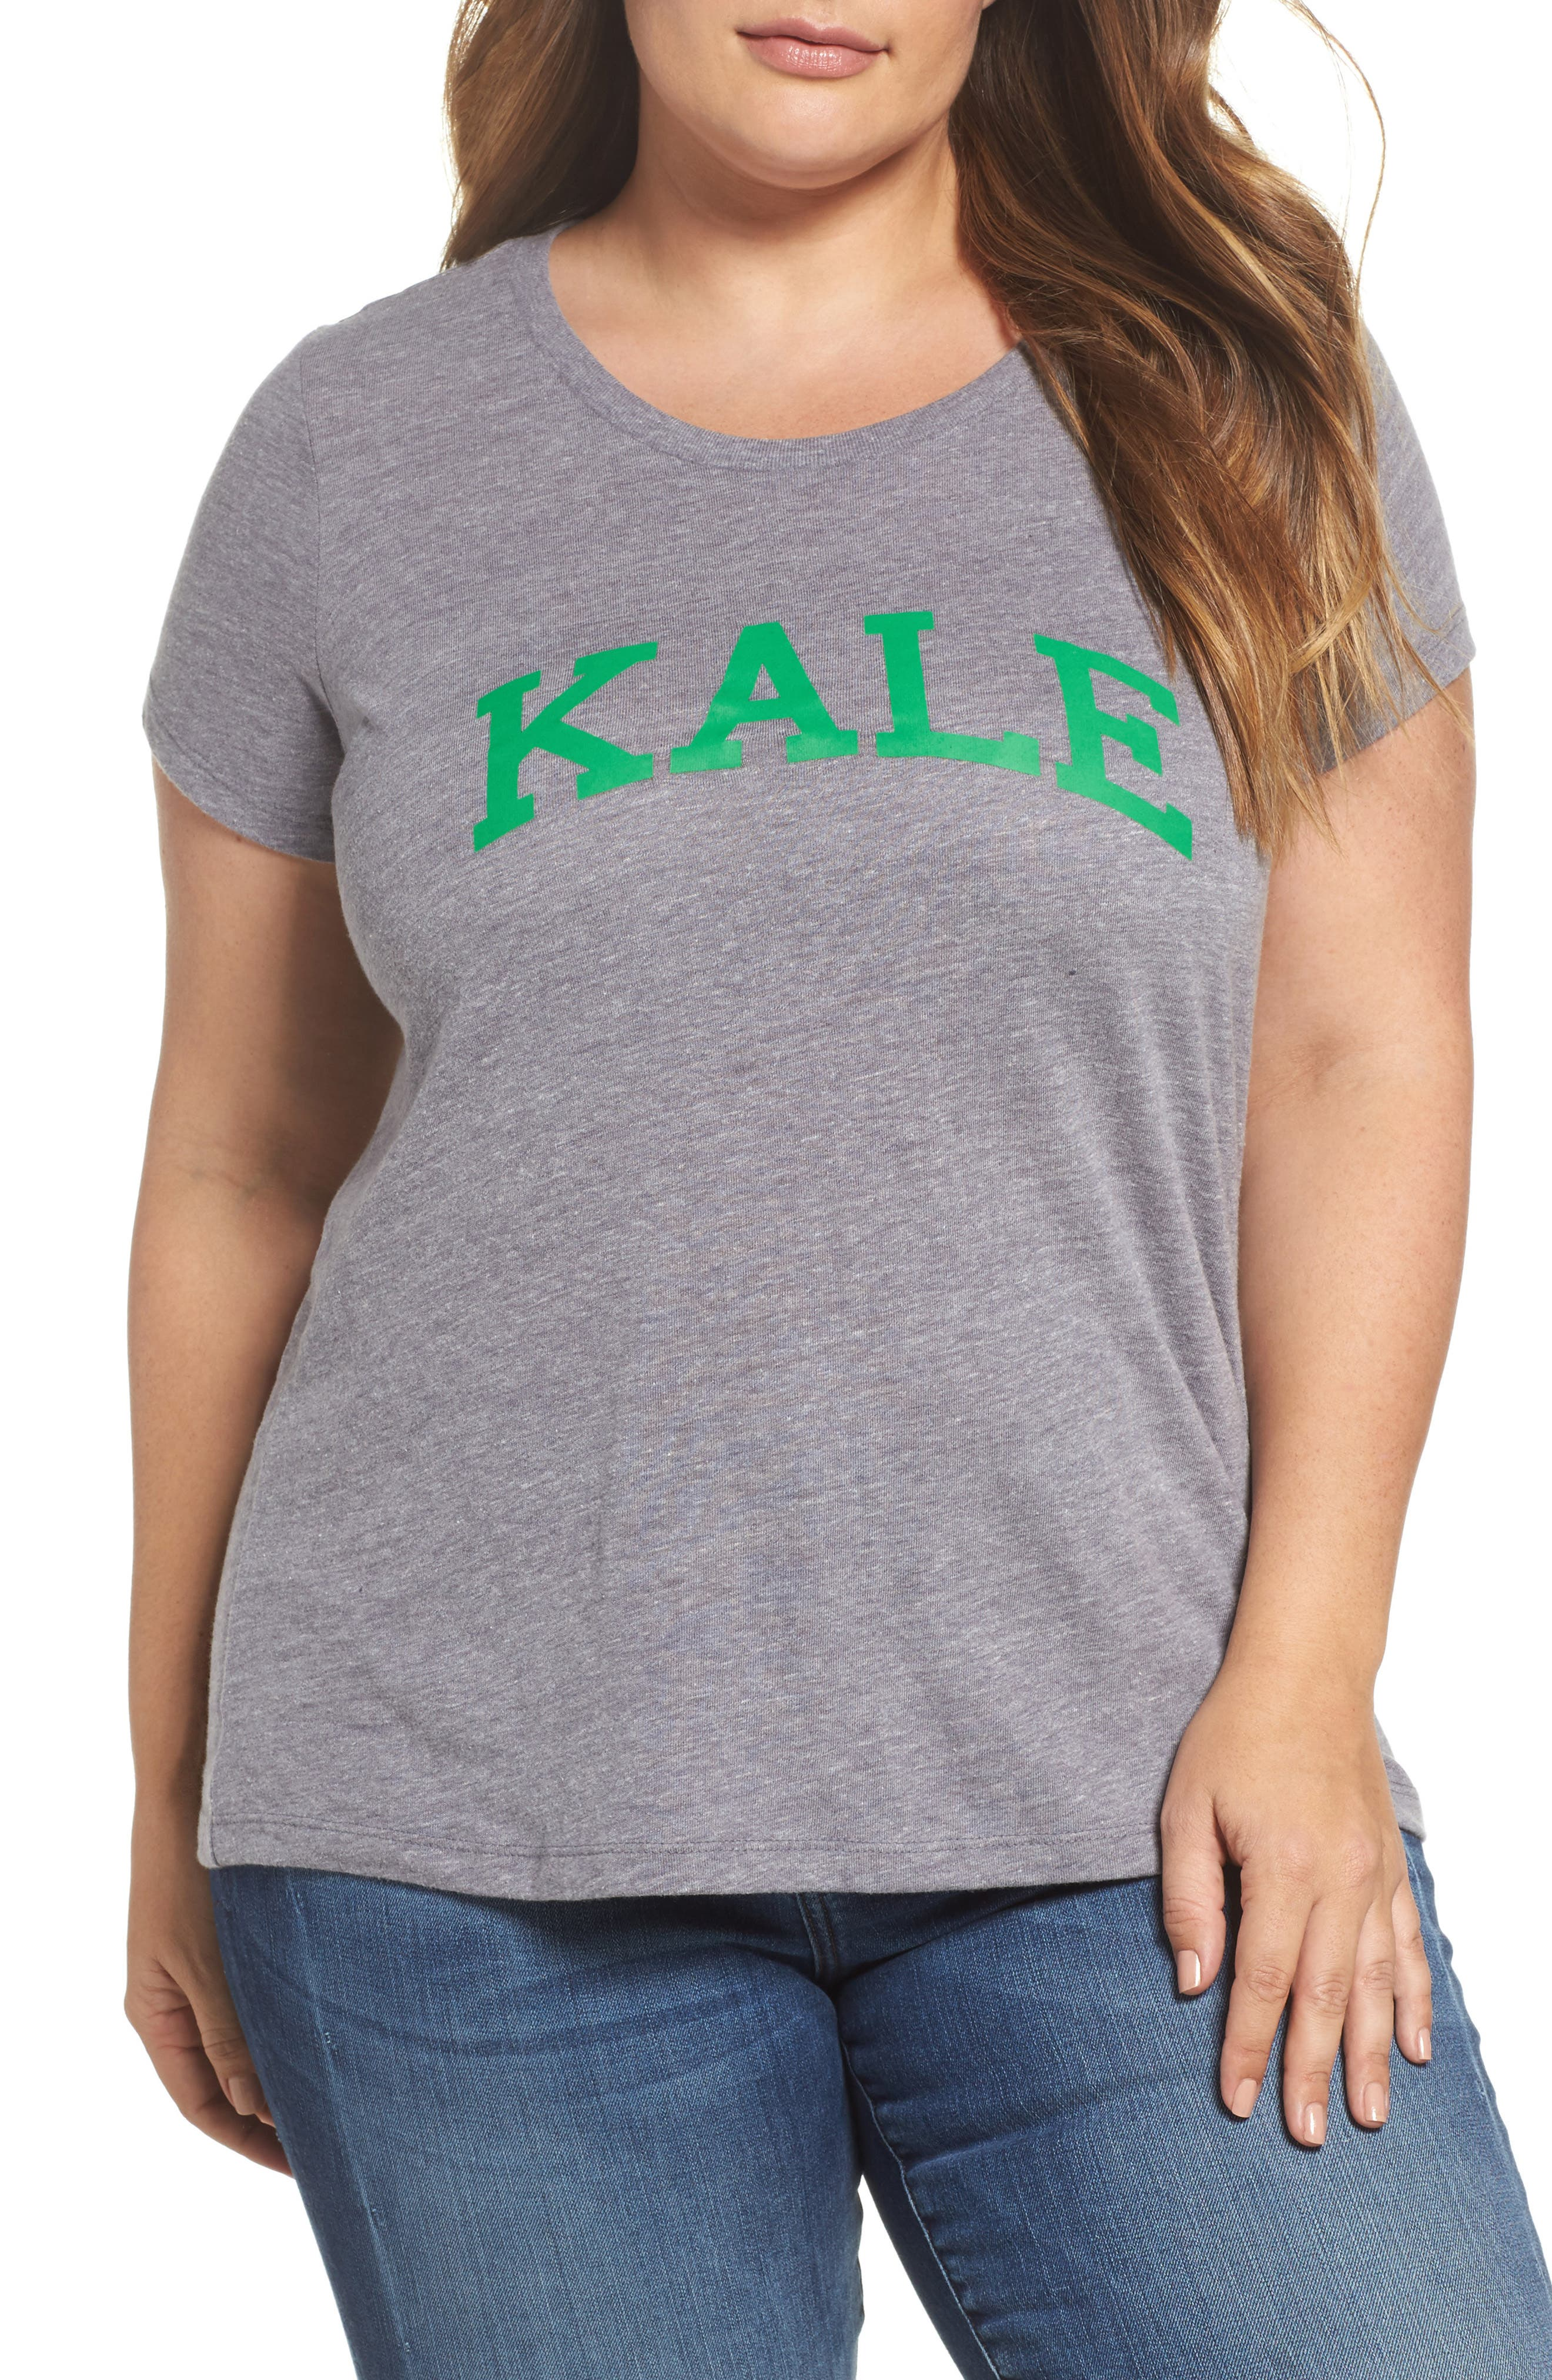 Alternate Image 1 Selected - Sub_Urban Riot Kale Graphic Tee (Plus Size)